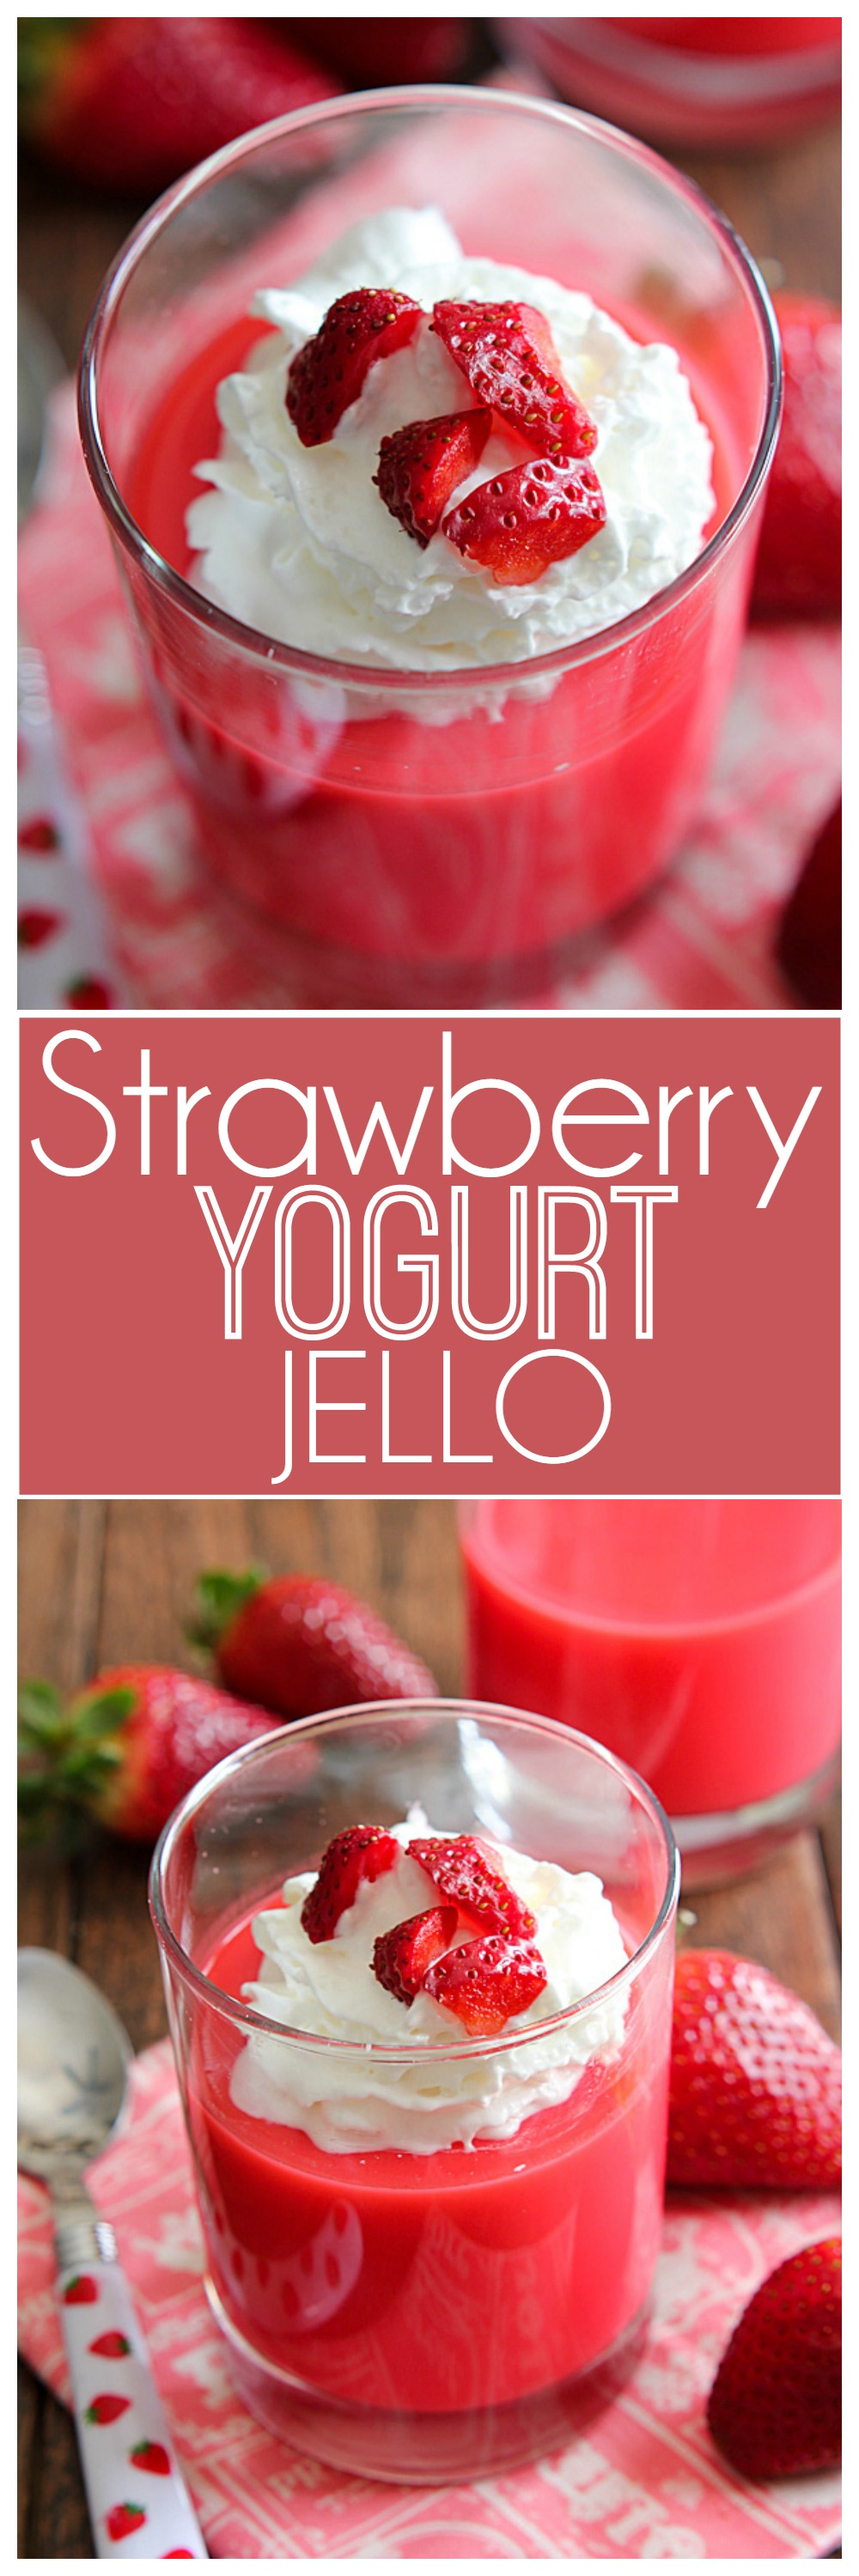 Strawberry Yogurt Jello | Mandy's Recipe Box